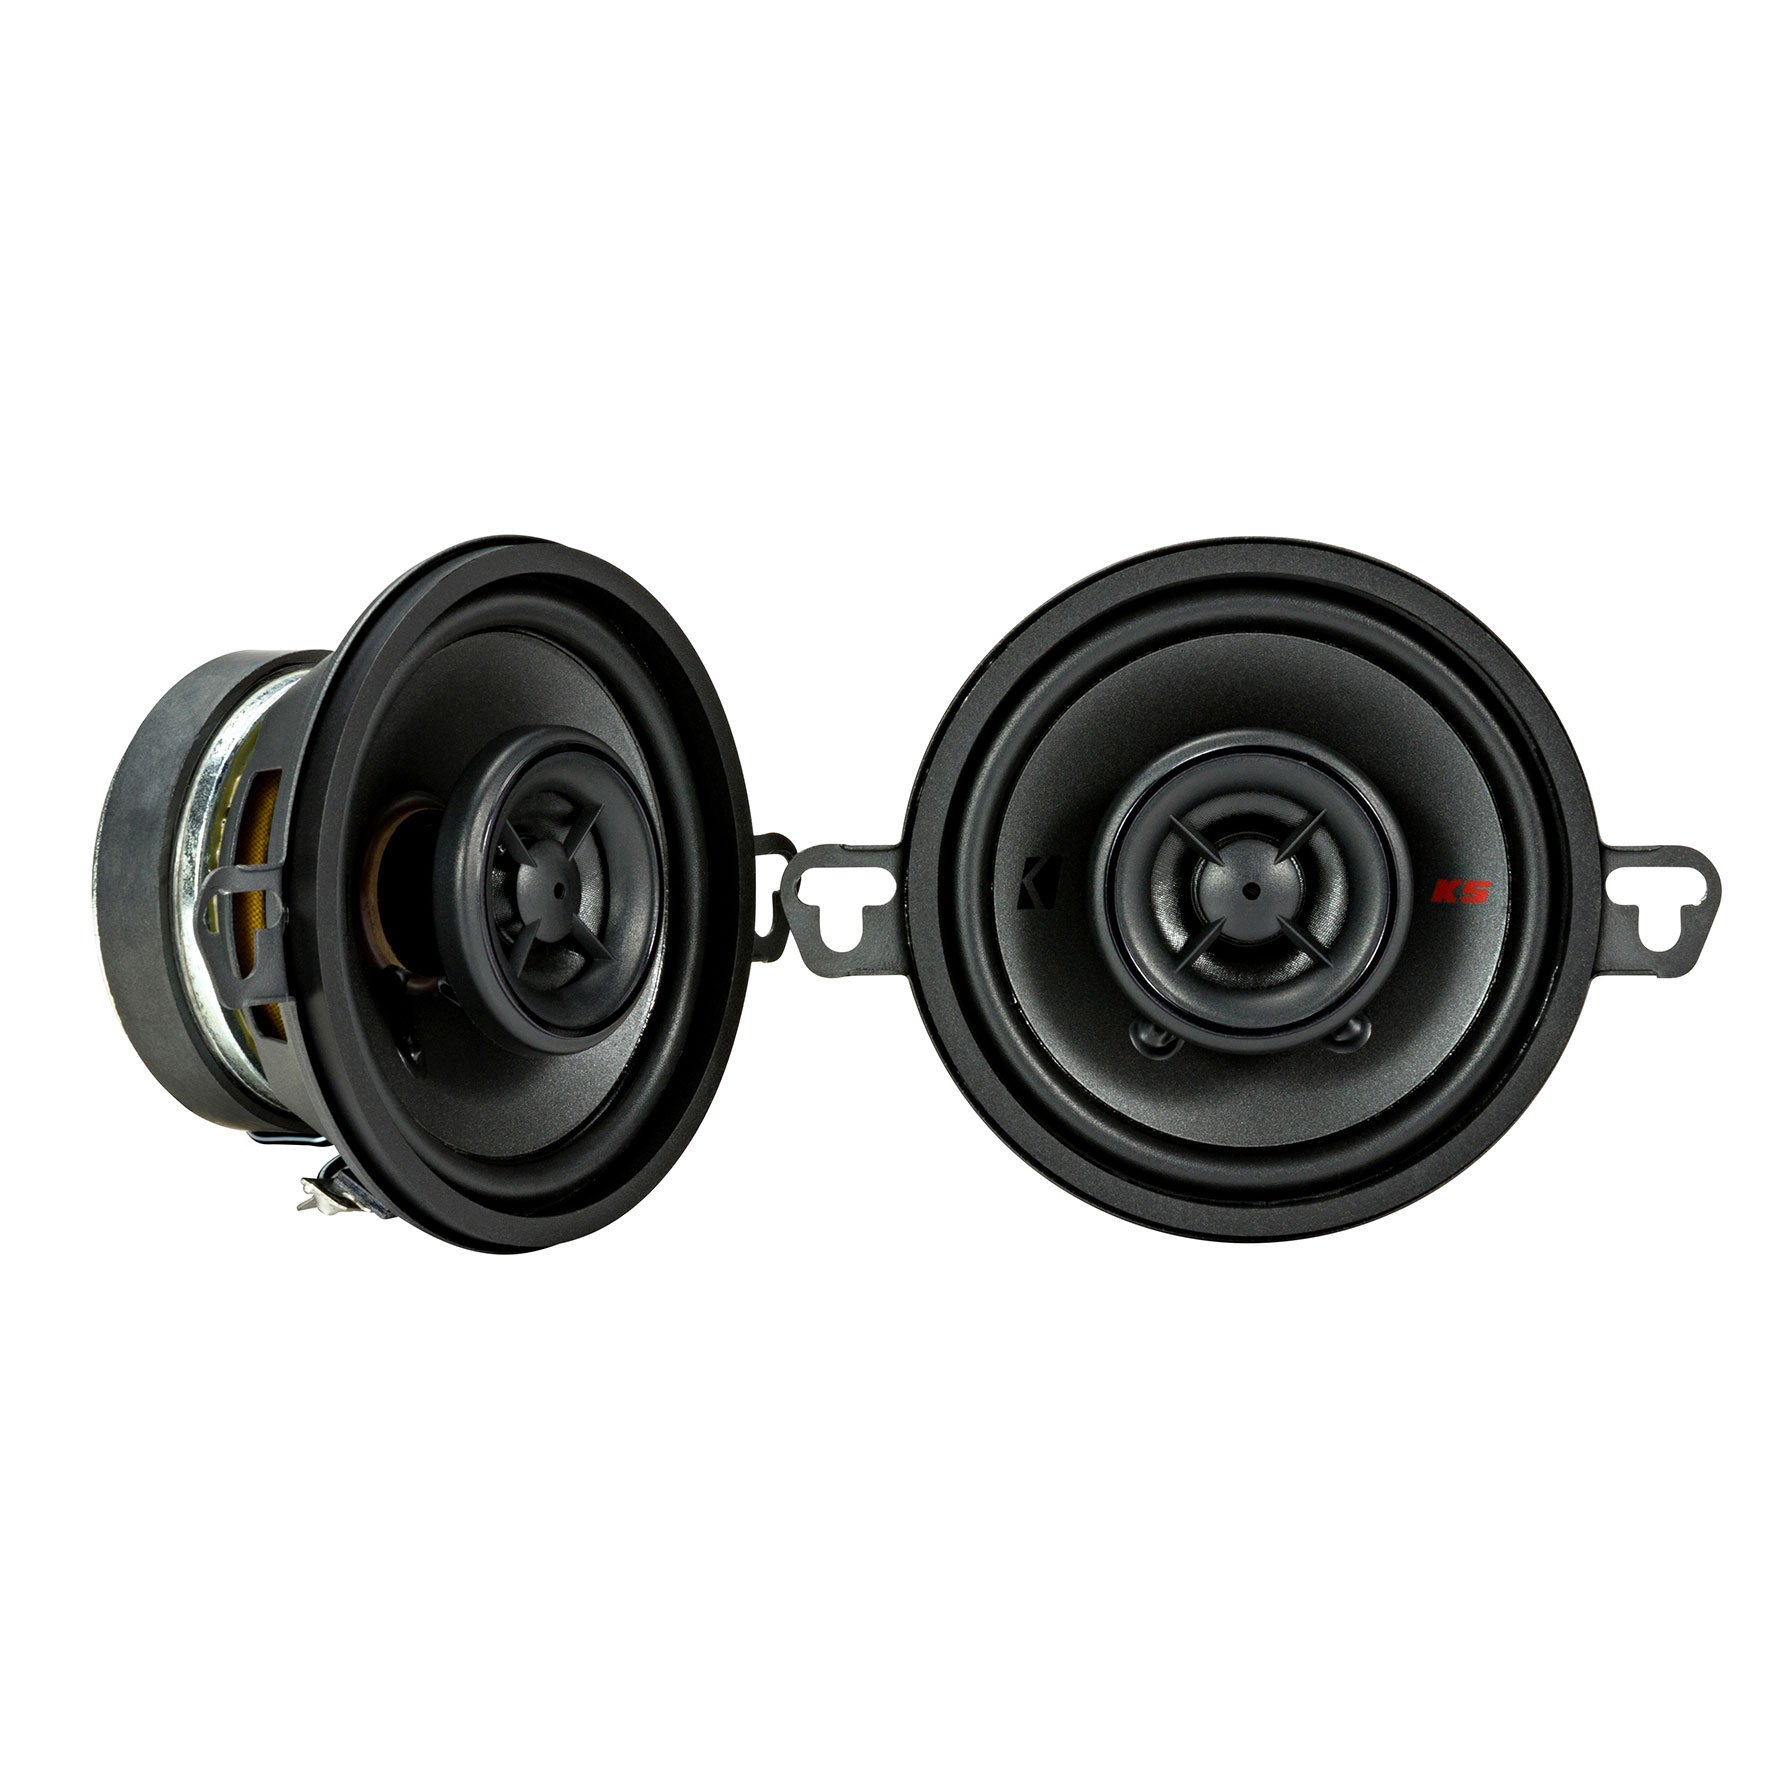 "KICKER 44KSC3504 3.5"" (89mm) Coax Spkrs w/.5""(13mm) tweeters, 4ohm, RoHS Compliant"